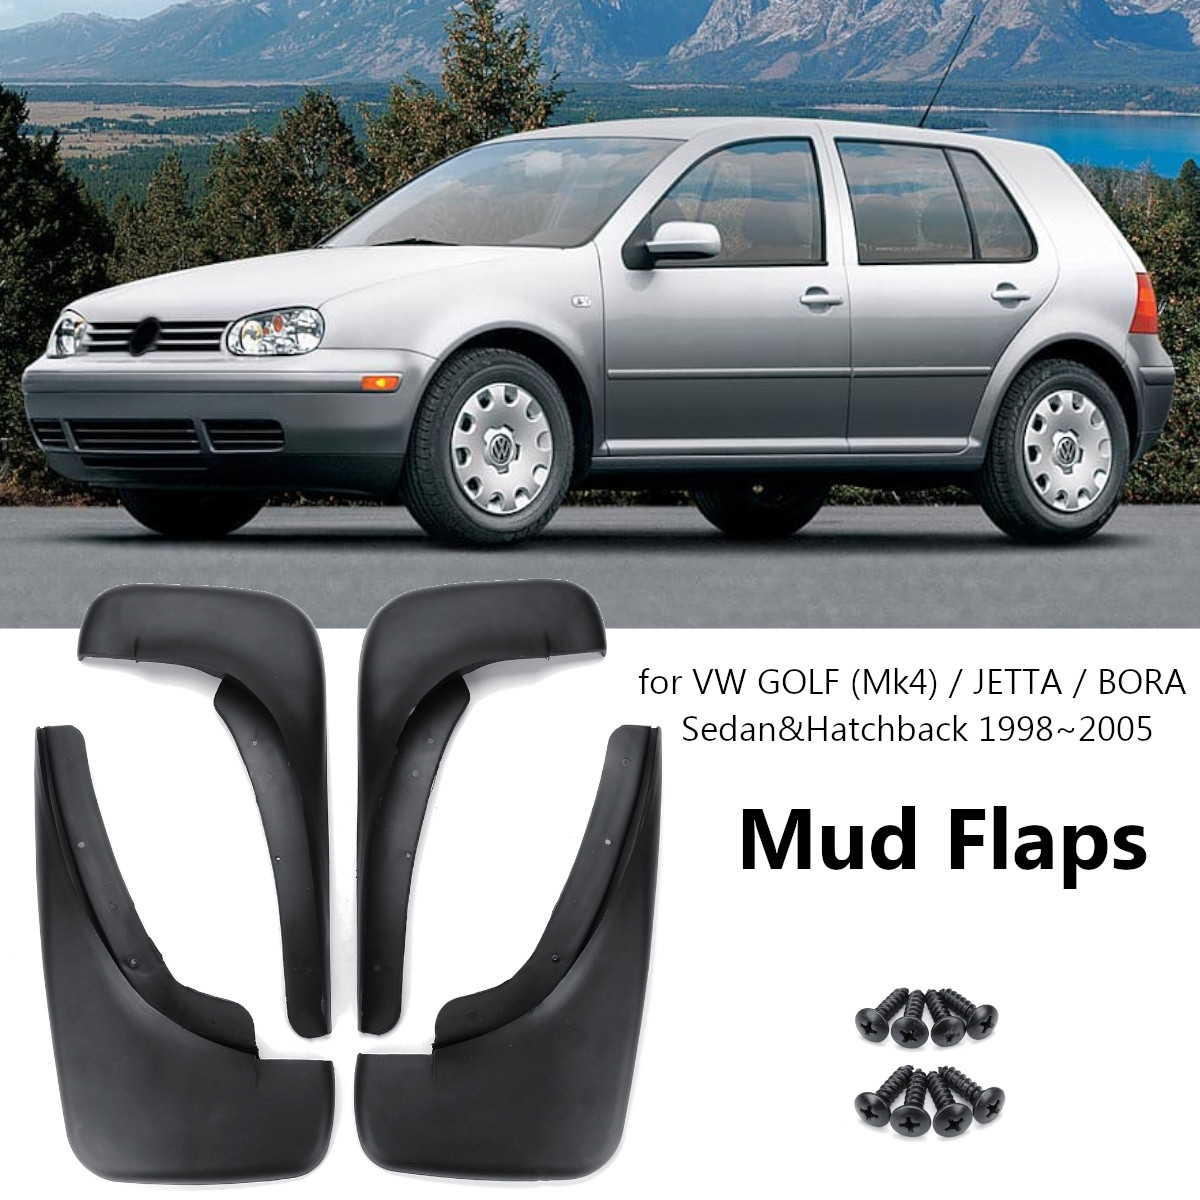 4 X NEW QUALITY WIDE MUDFLAPS TO FIT VW Beetle UNIVERSAL fit